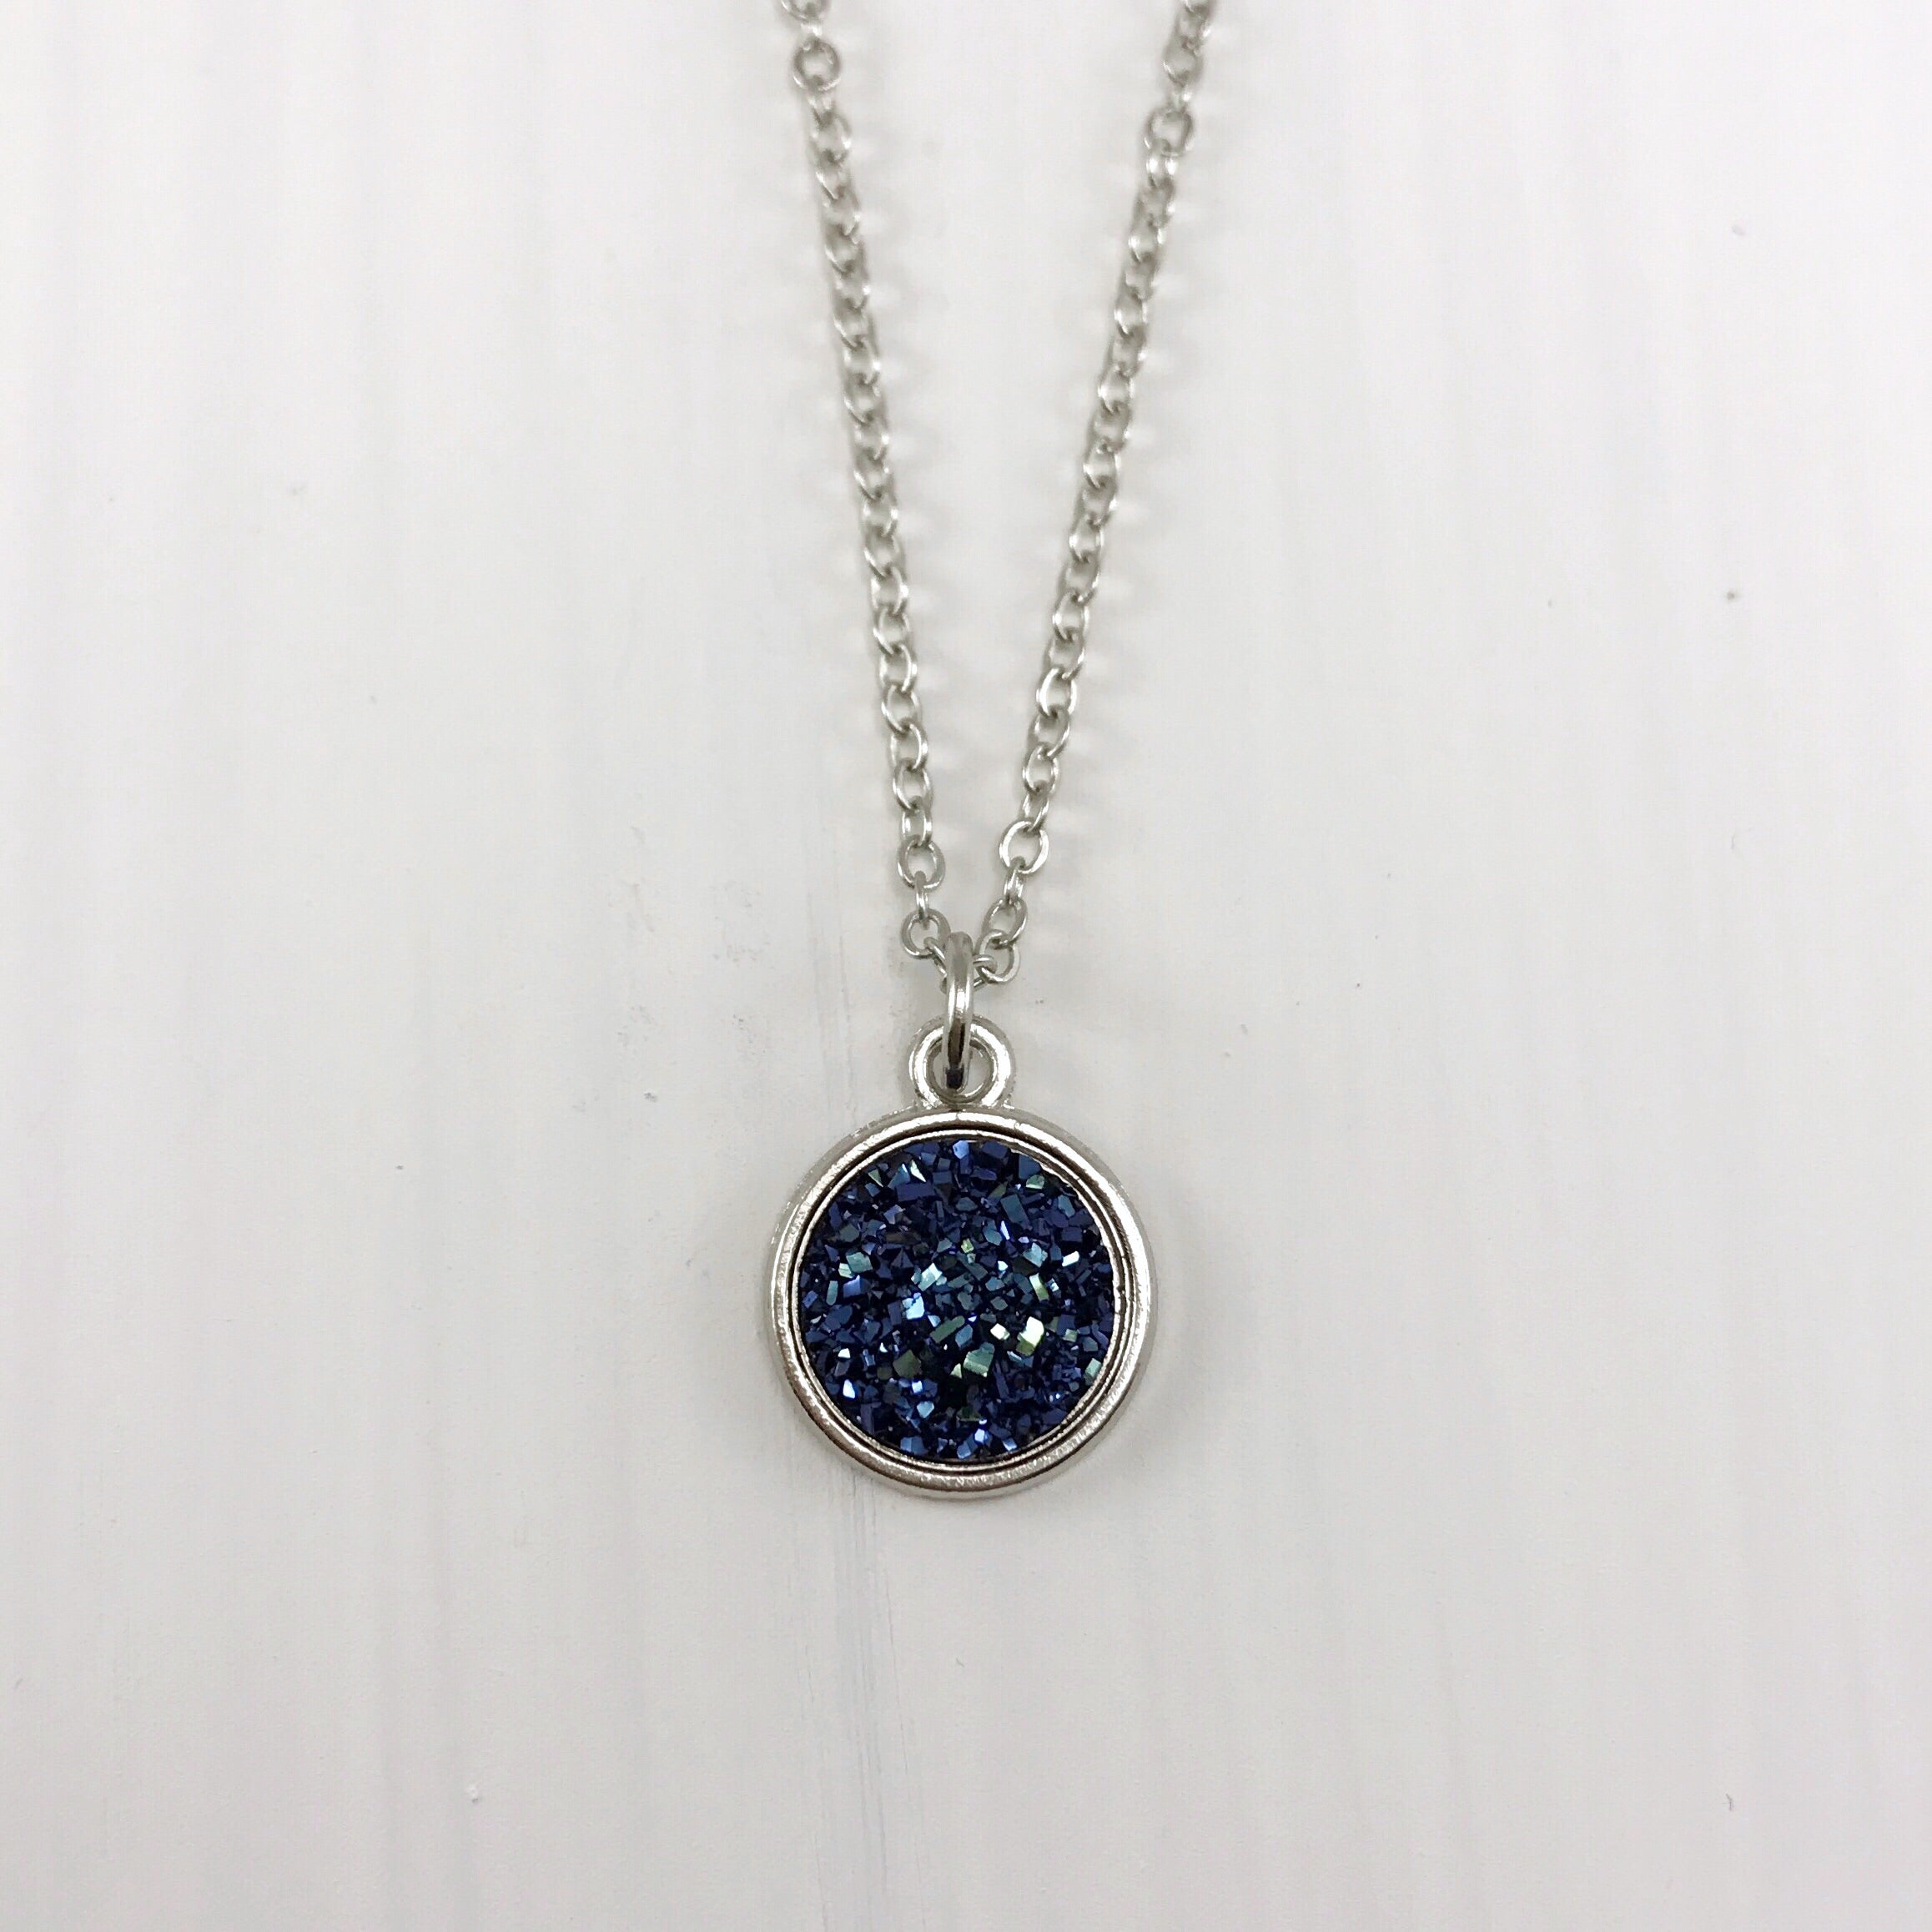 Metallic Blue Faux Druzy Necklace - Small